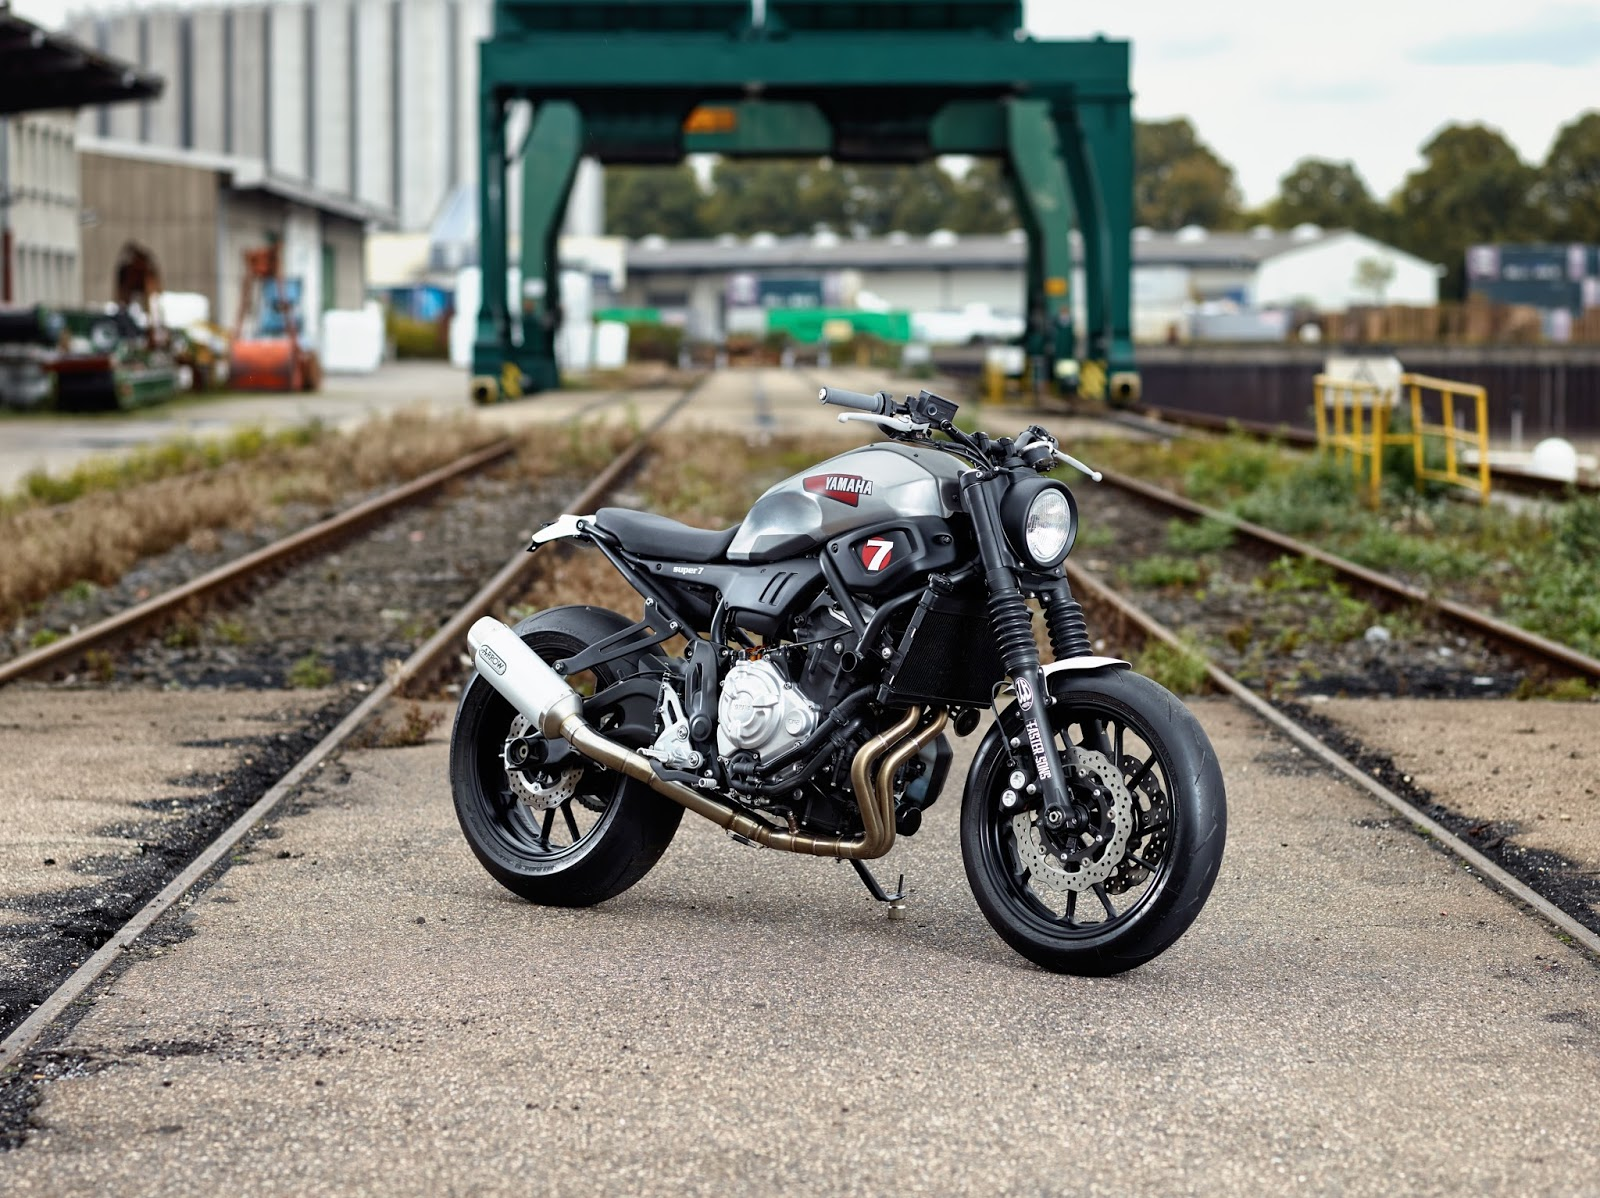 Yamaha XSR 700 Super 7 By JvB Moto